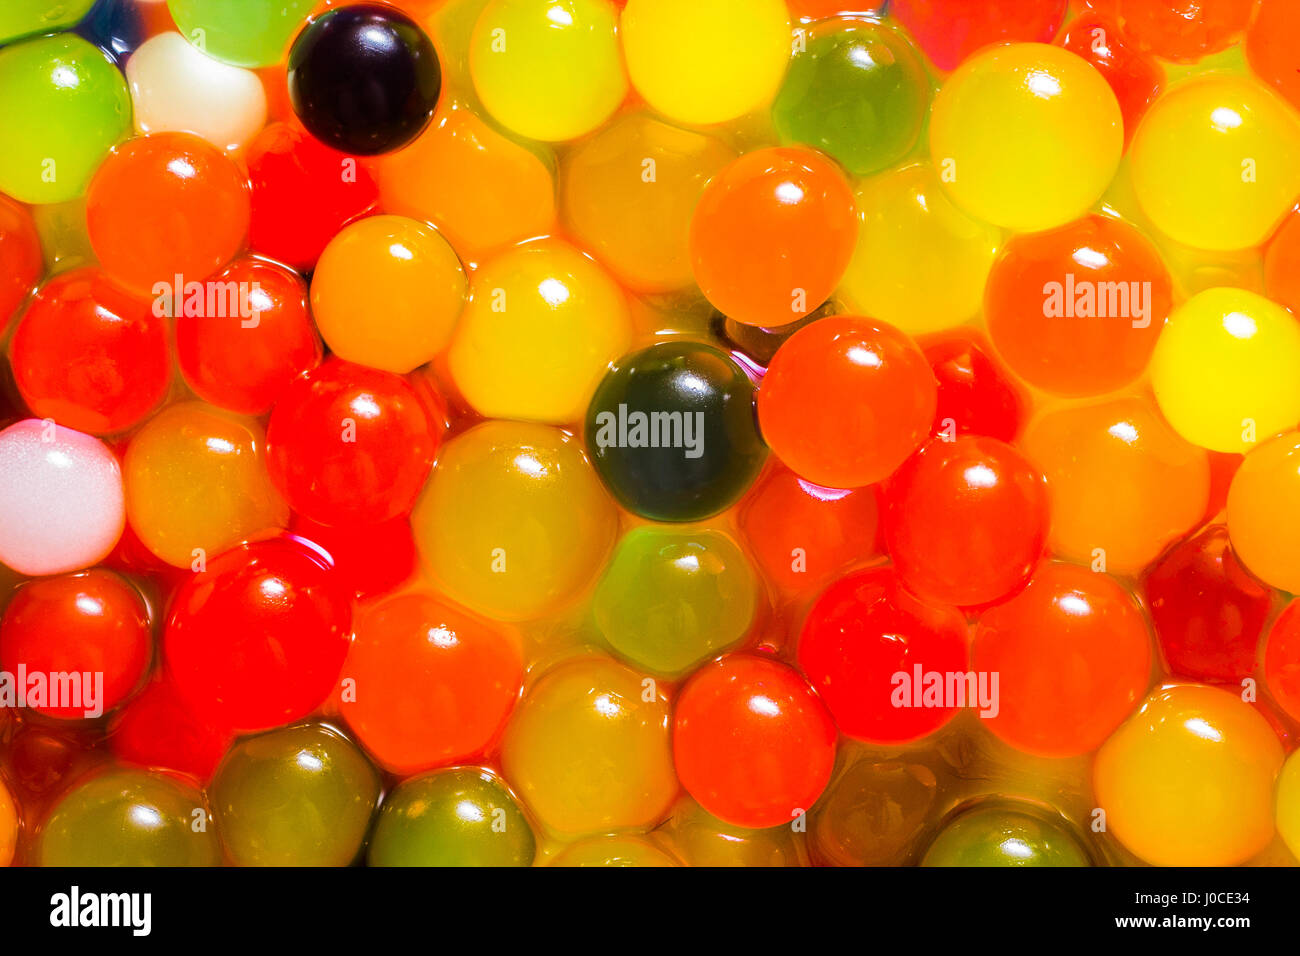 magic growing jelly balls, colorful abstract background - Stock Image